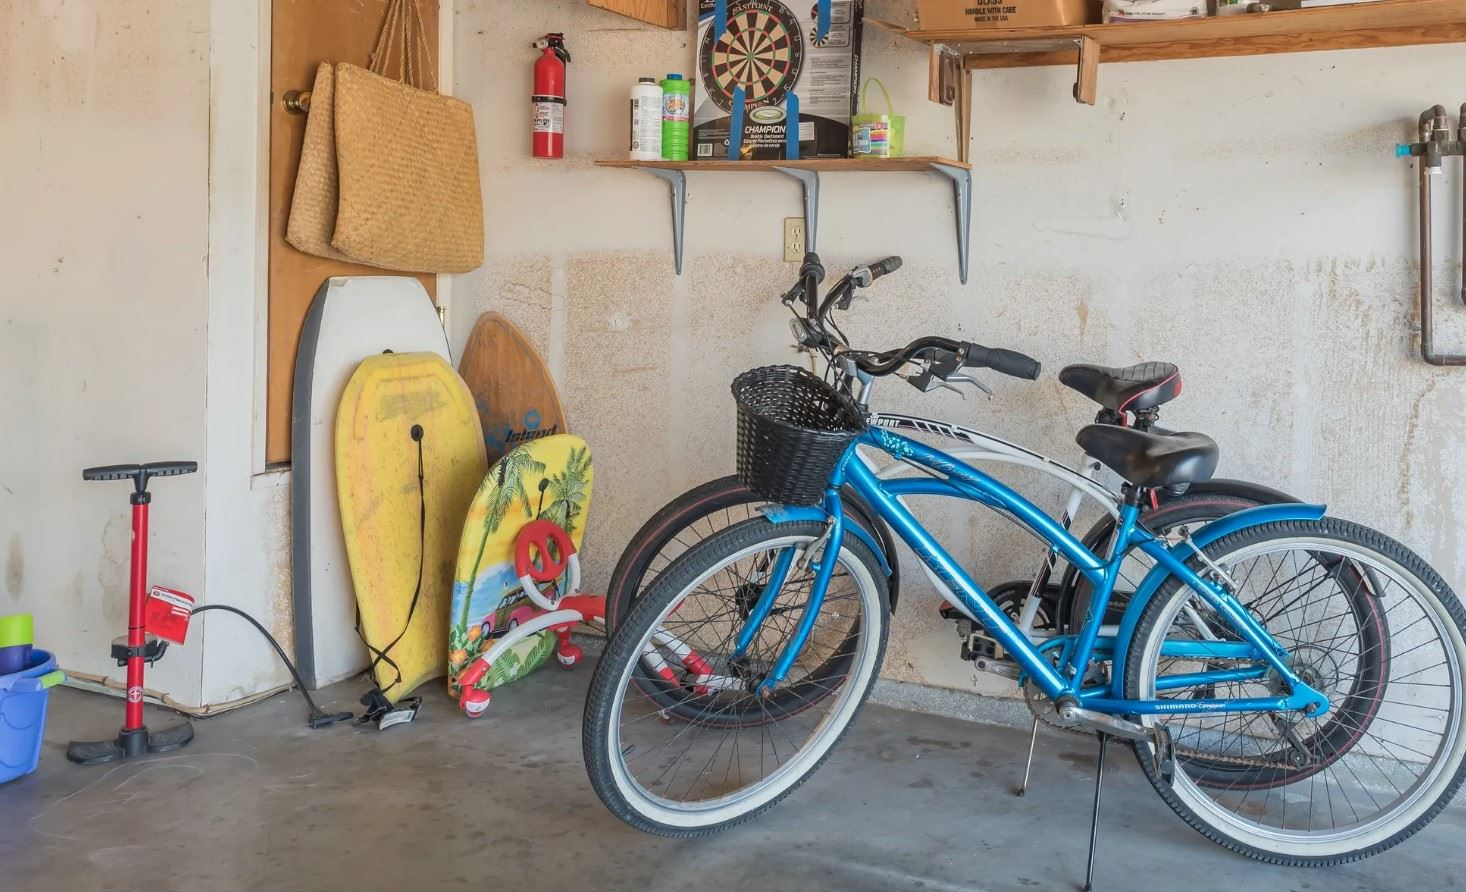 Morro Bay Rock Revival - Interior - View of toys and bikes in garage